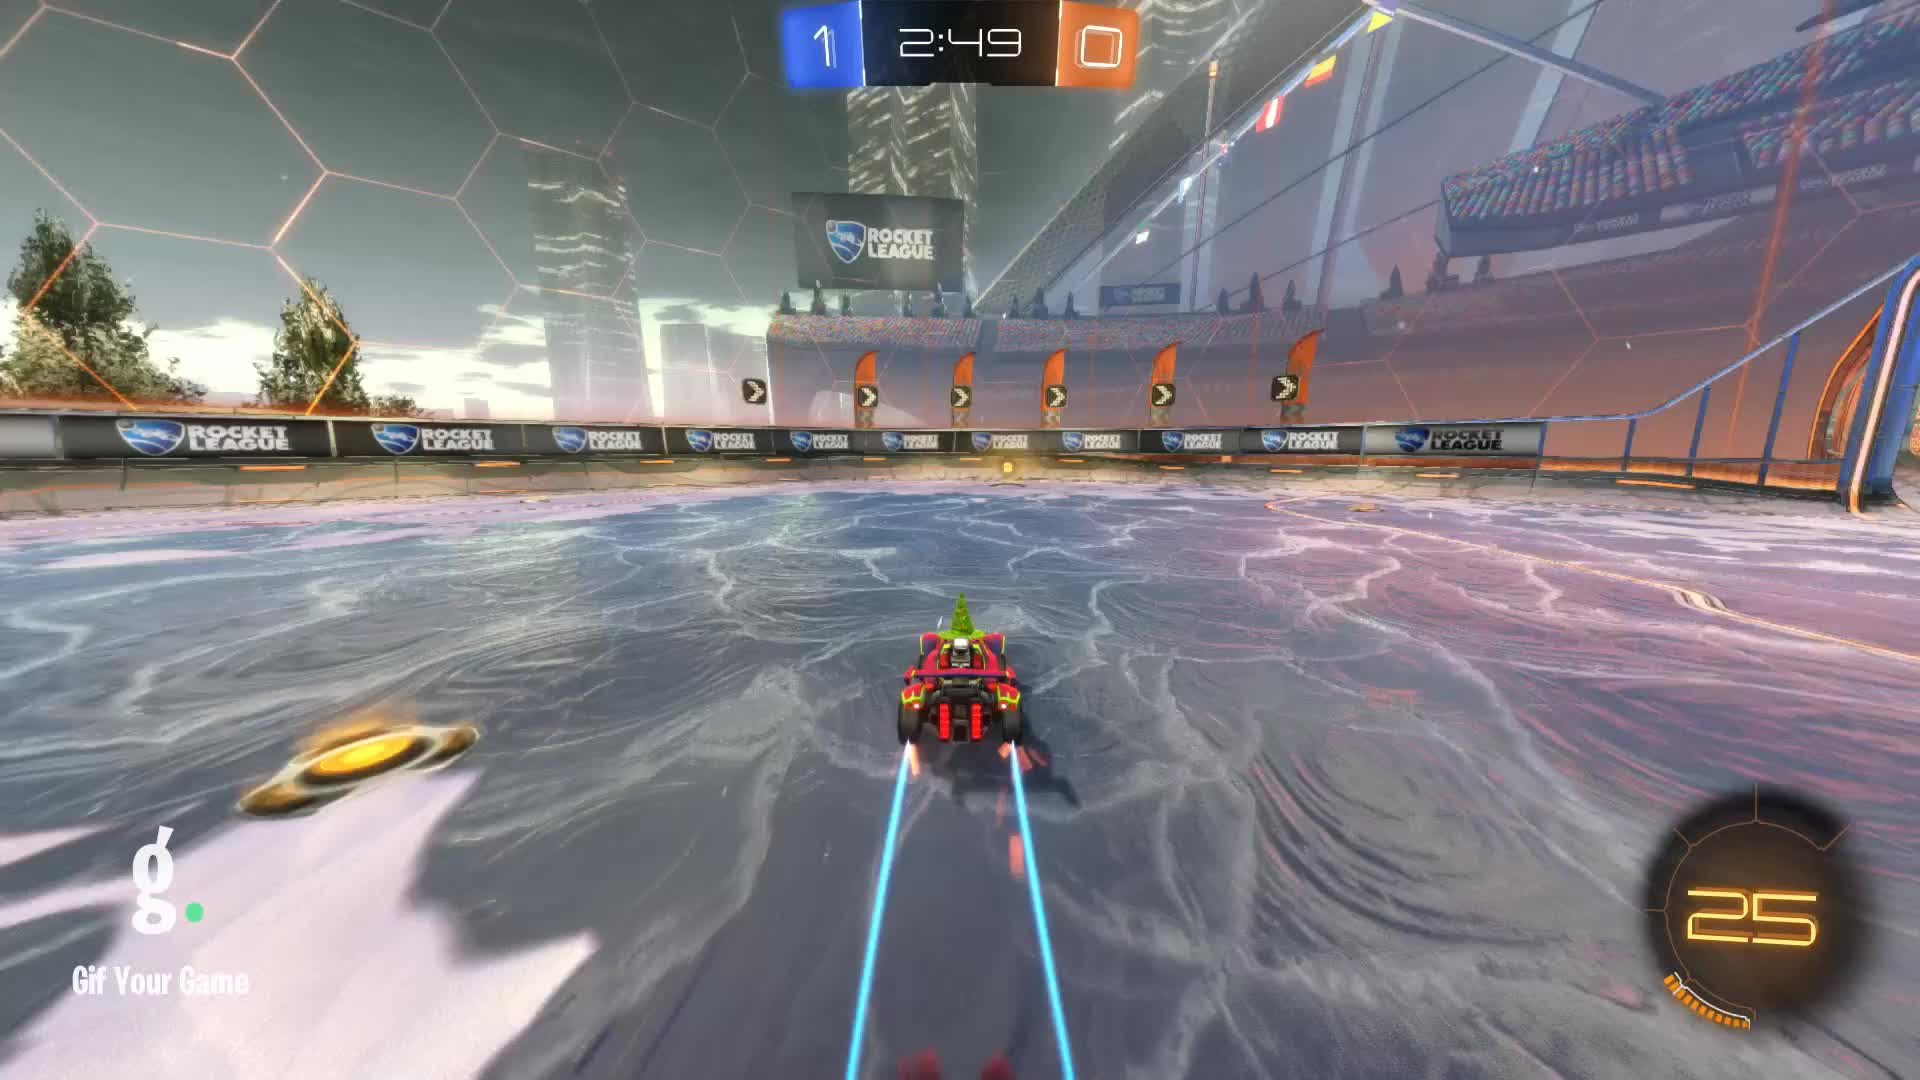 Alexander the Magnificent, Gif Your Game, GifYourGame, Goal, Rocket League, RocketLeague, Goal 2: Alexander the Magnificent GIFs